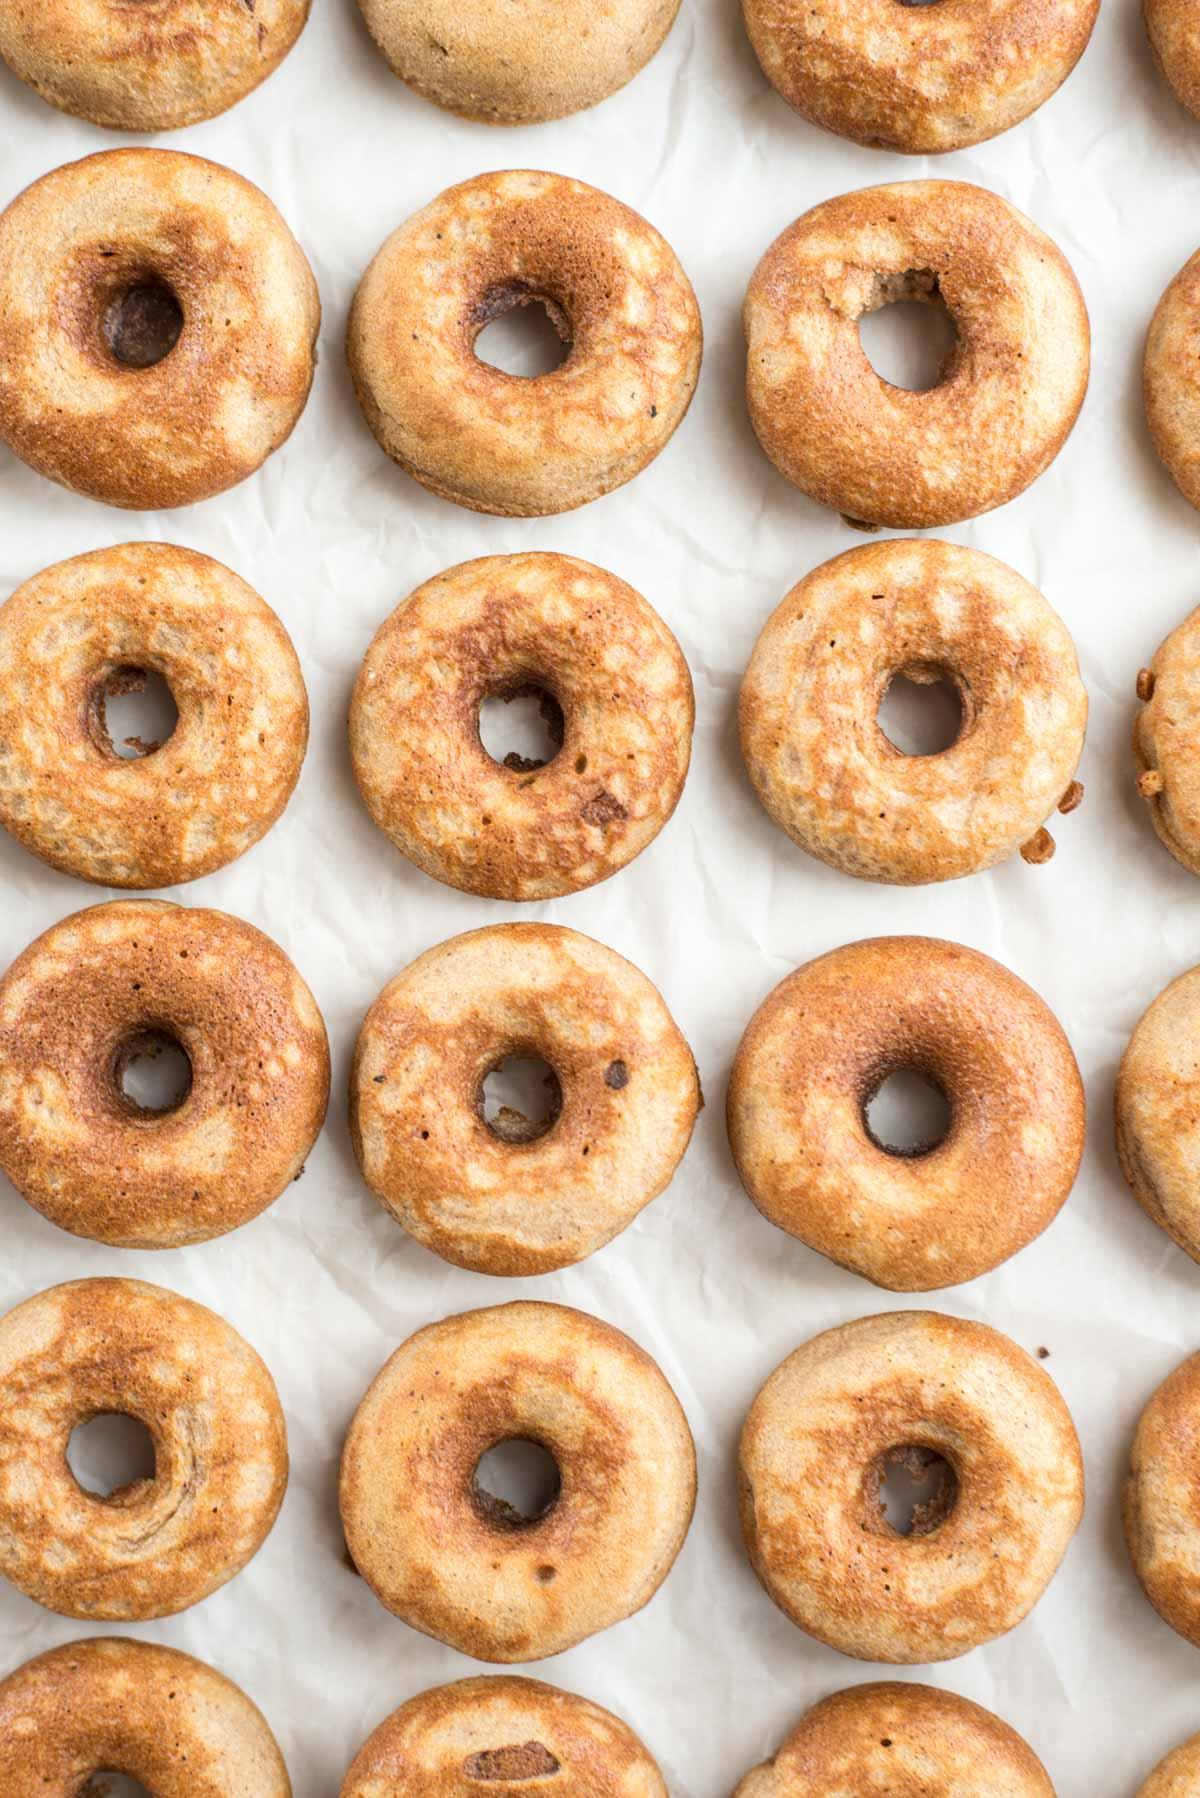 The perfect fall begins with these 10 minute apple cider donuts with maple glaze {vegan, gluten-free, paleo}